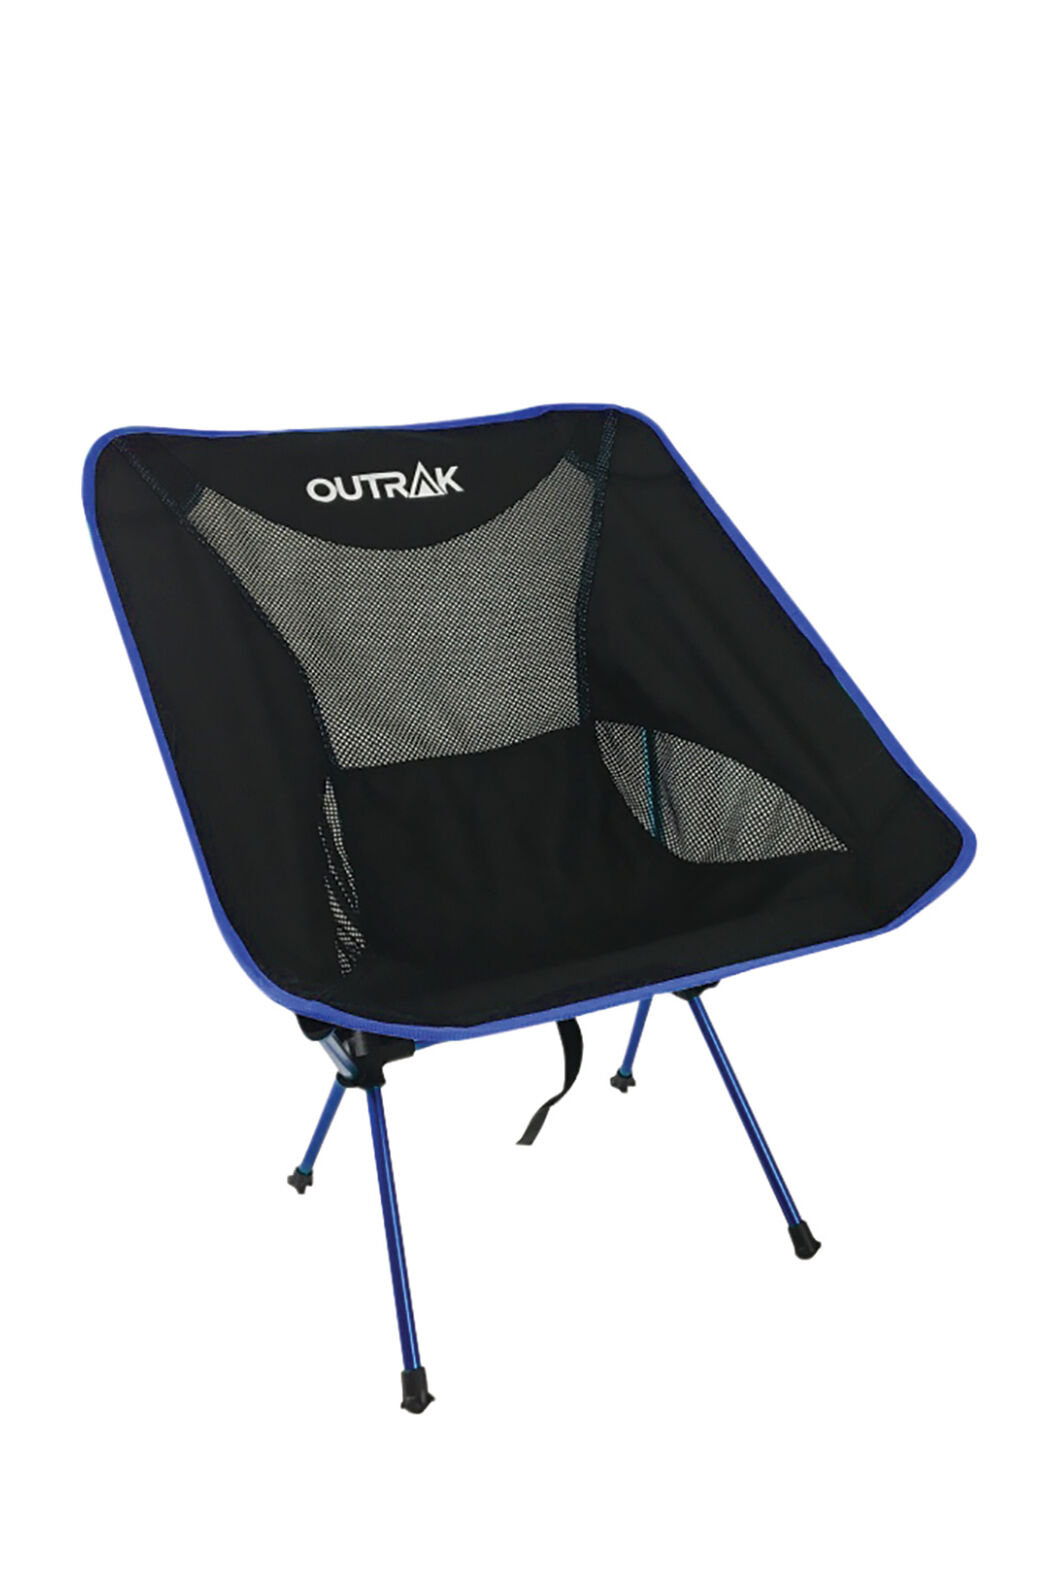 Outrak Travel Hiking Chair, None, hi-res